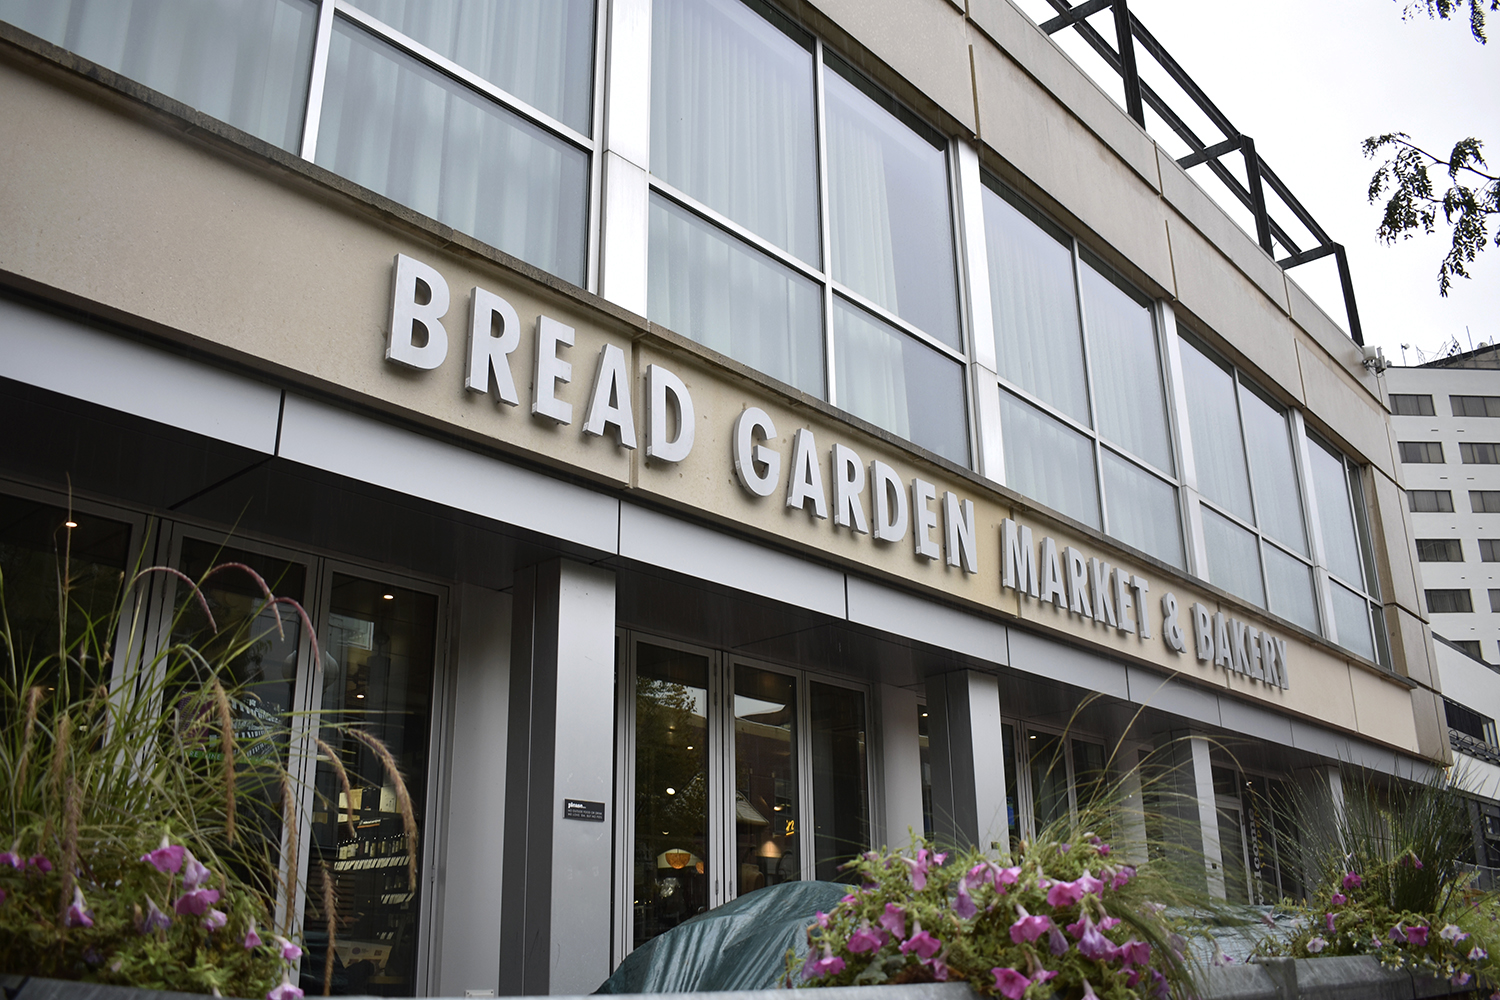 The exterior of Bread Garden Market in downtown Iowa City is seen on Wednesday, Sept. 5, 2018. The Java Houses in University of Iowa will soon all be replaced by Bread Gardens.